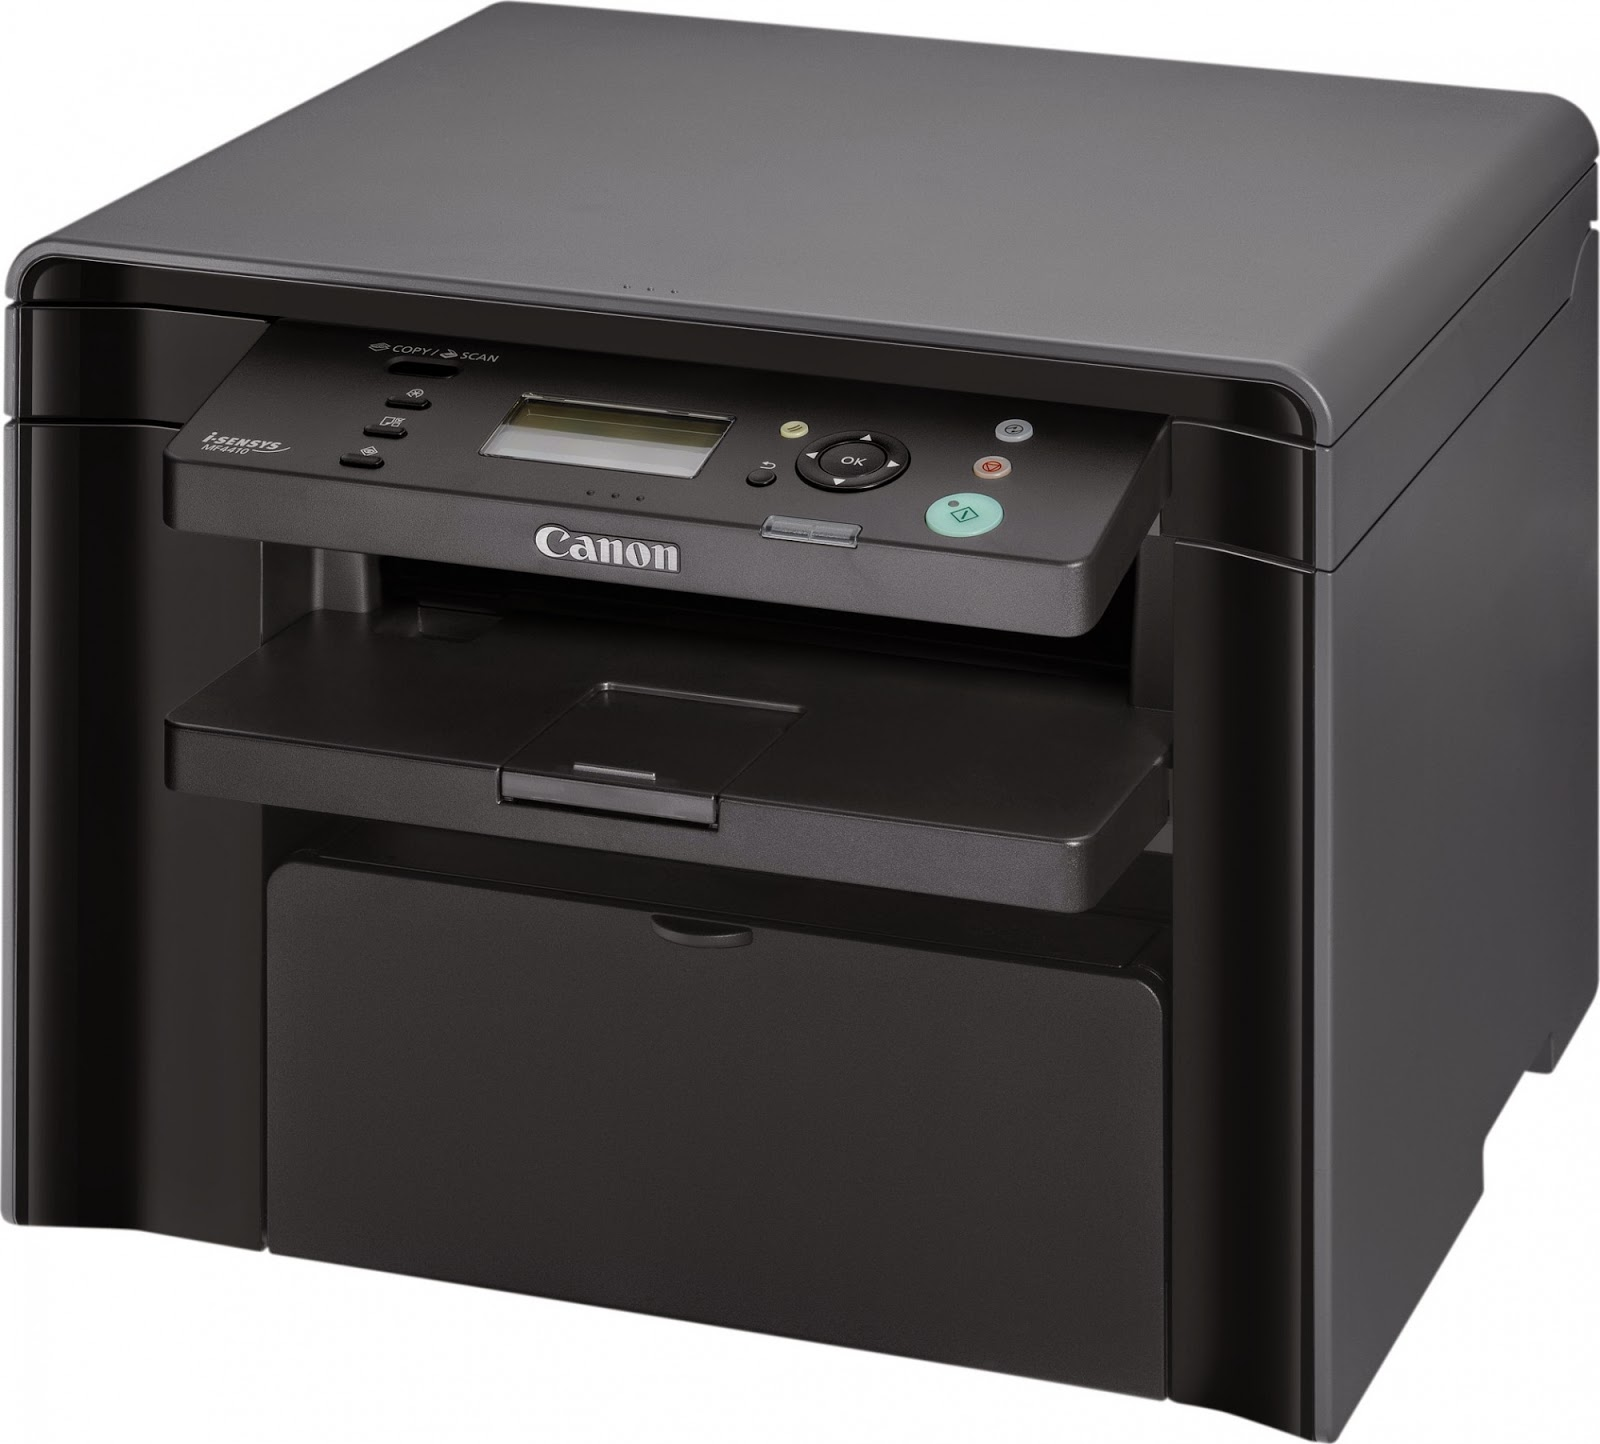 Драйвер canon lbp 2900 driver download for windows 7.